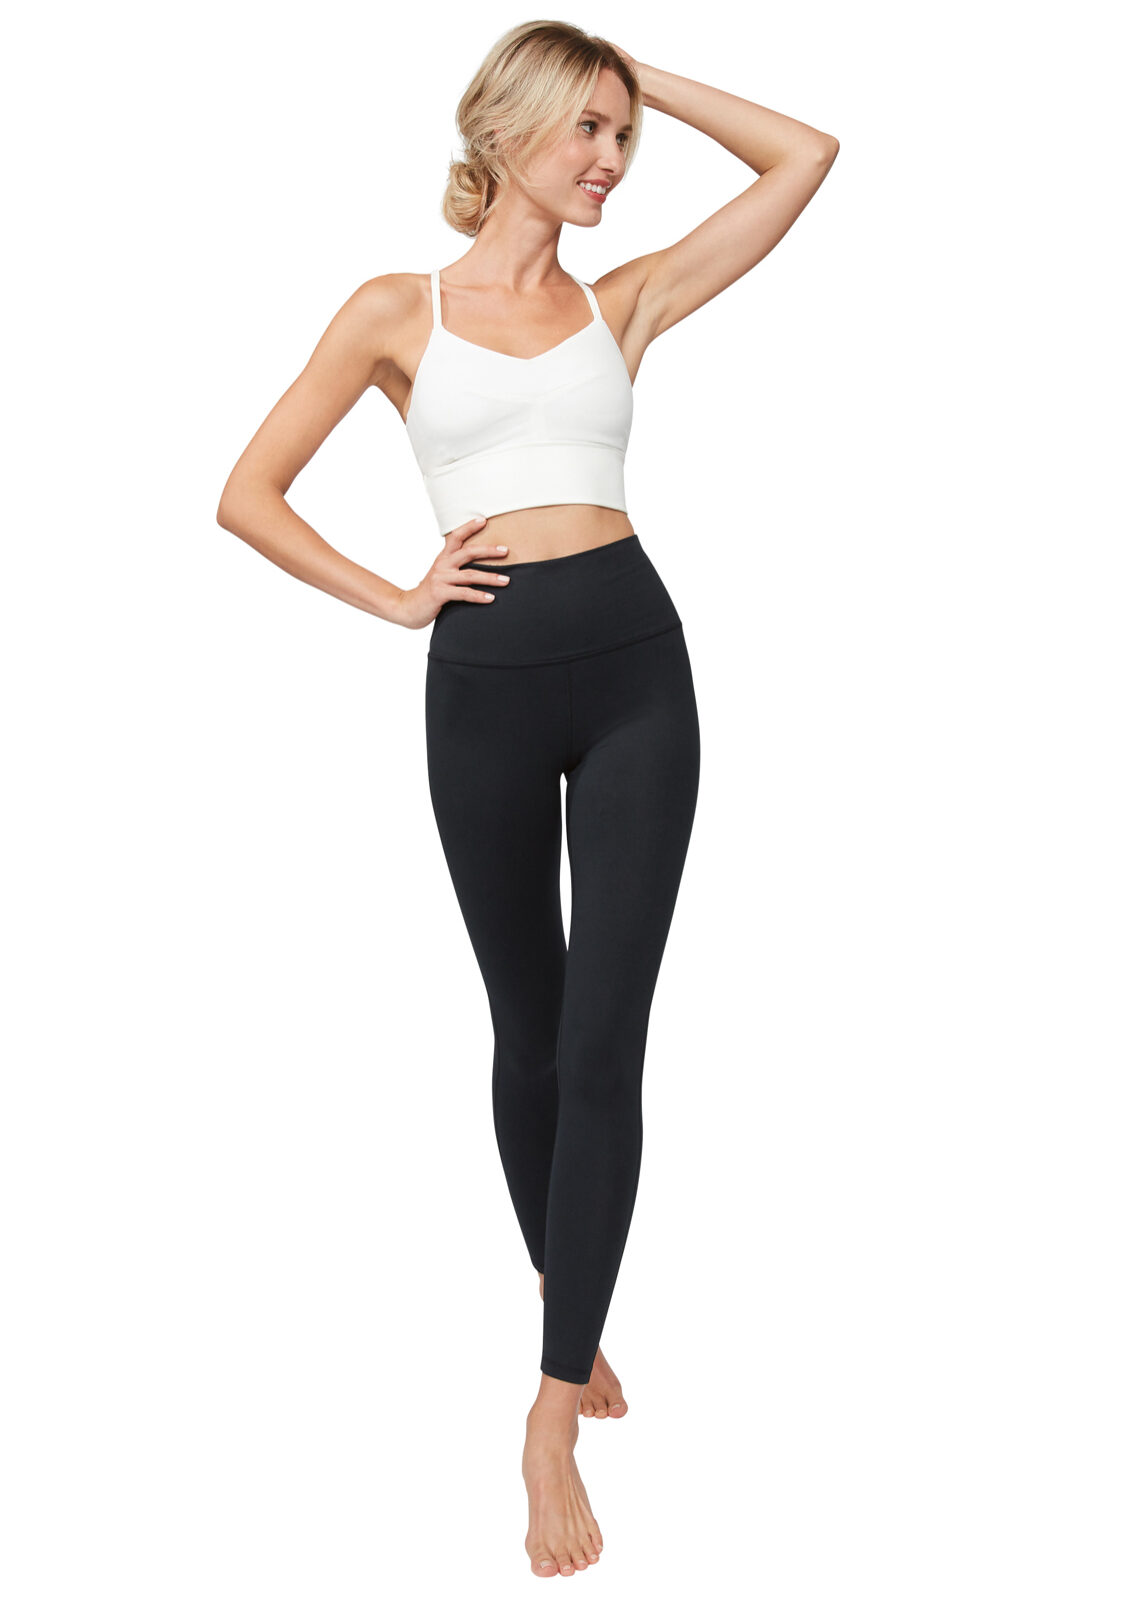 A woman stands with her right hand on her hip, and her left arm bent at the elbow with her hand on her head. Her left foot is slightly in front of her right foot. She is wearing a white cropped top and a pair of black high waisted leggings.